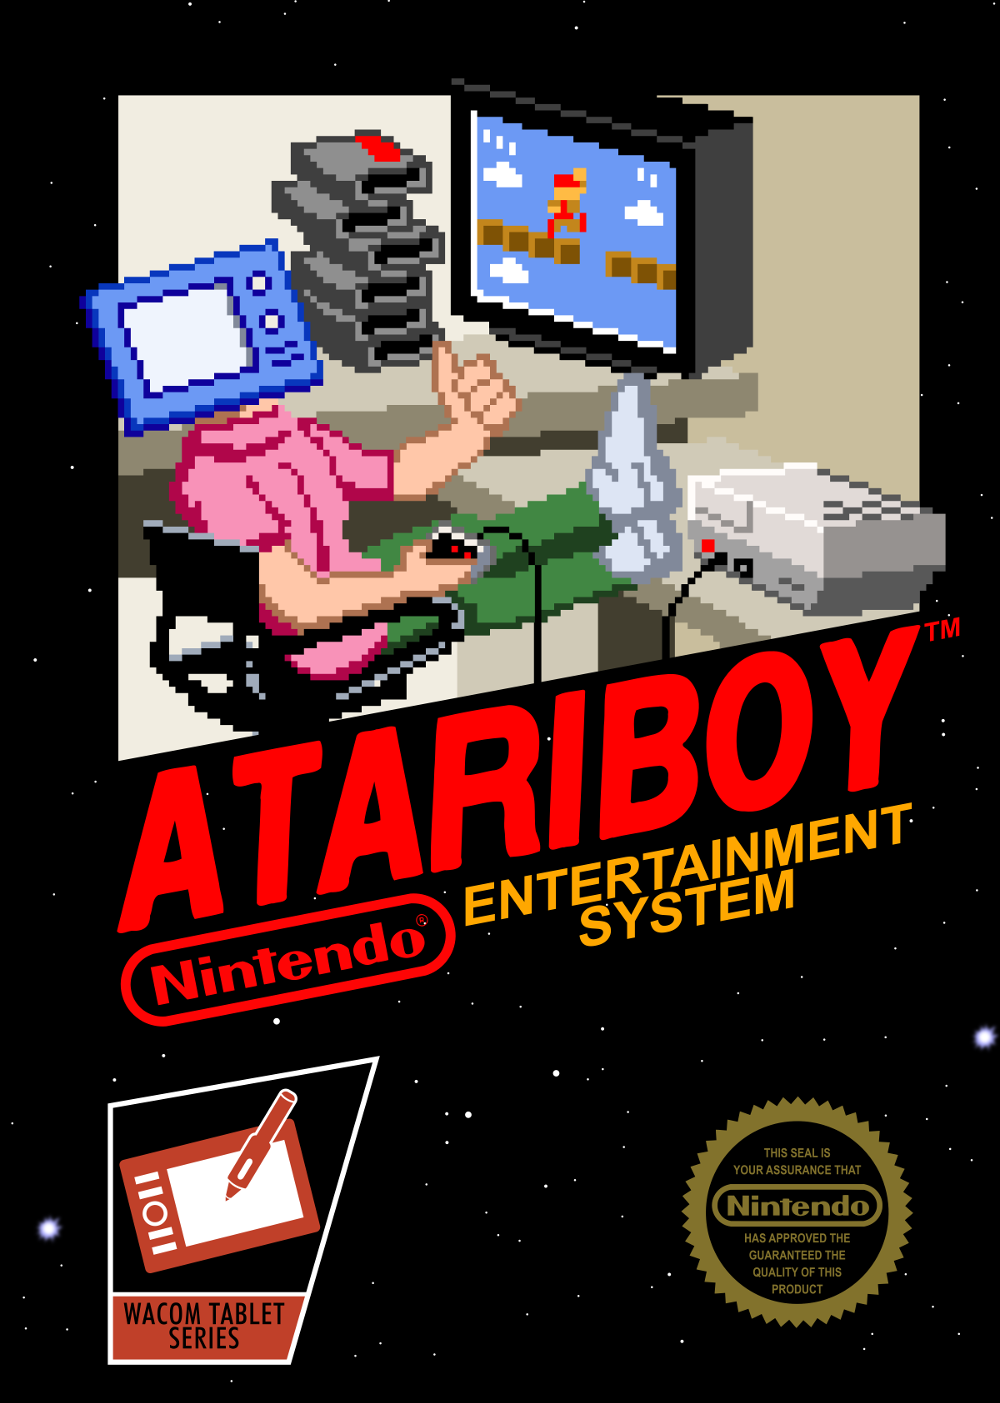 Atariboy2600's Profile Picture